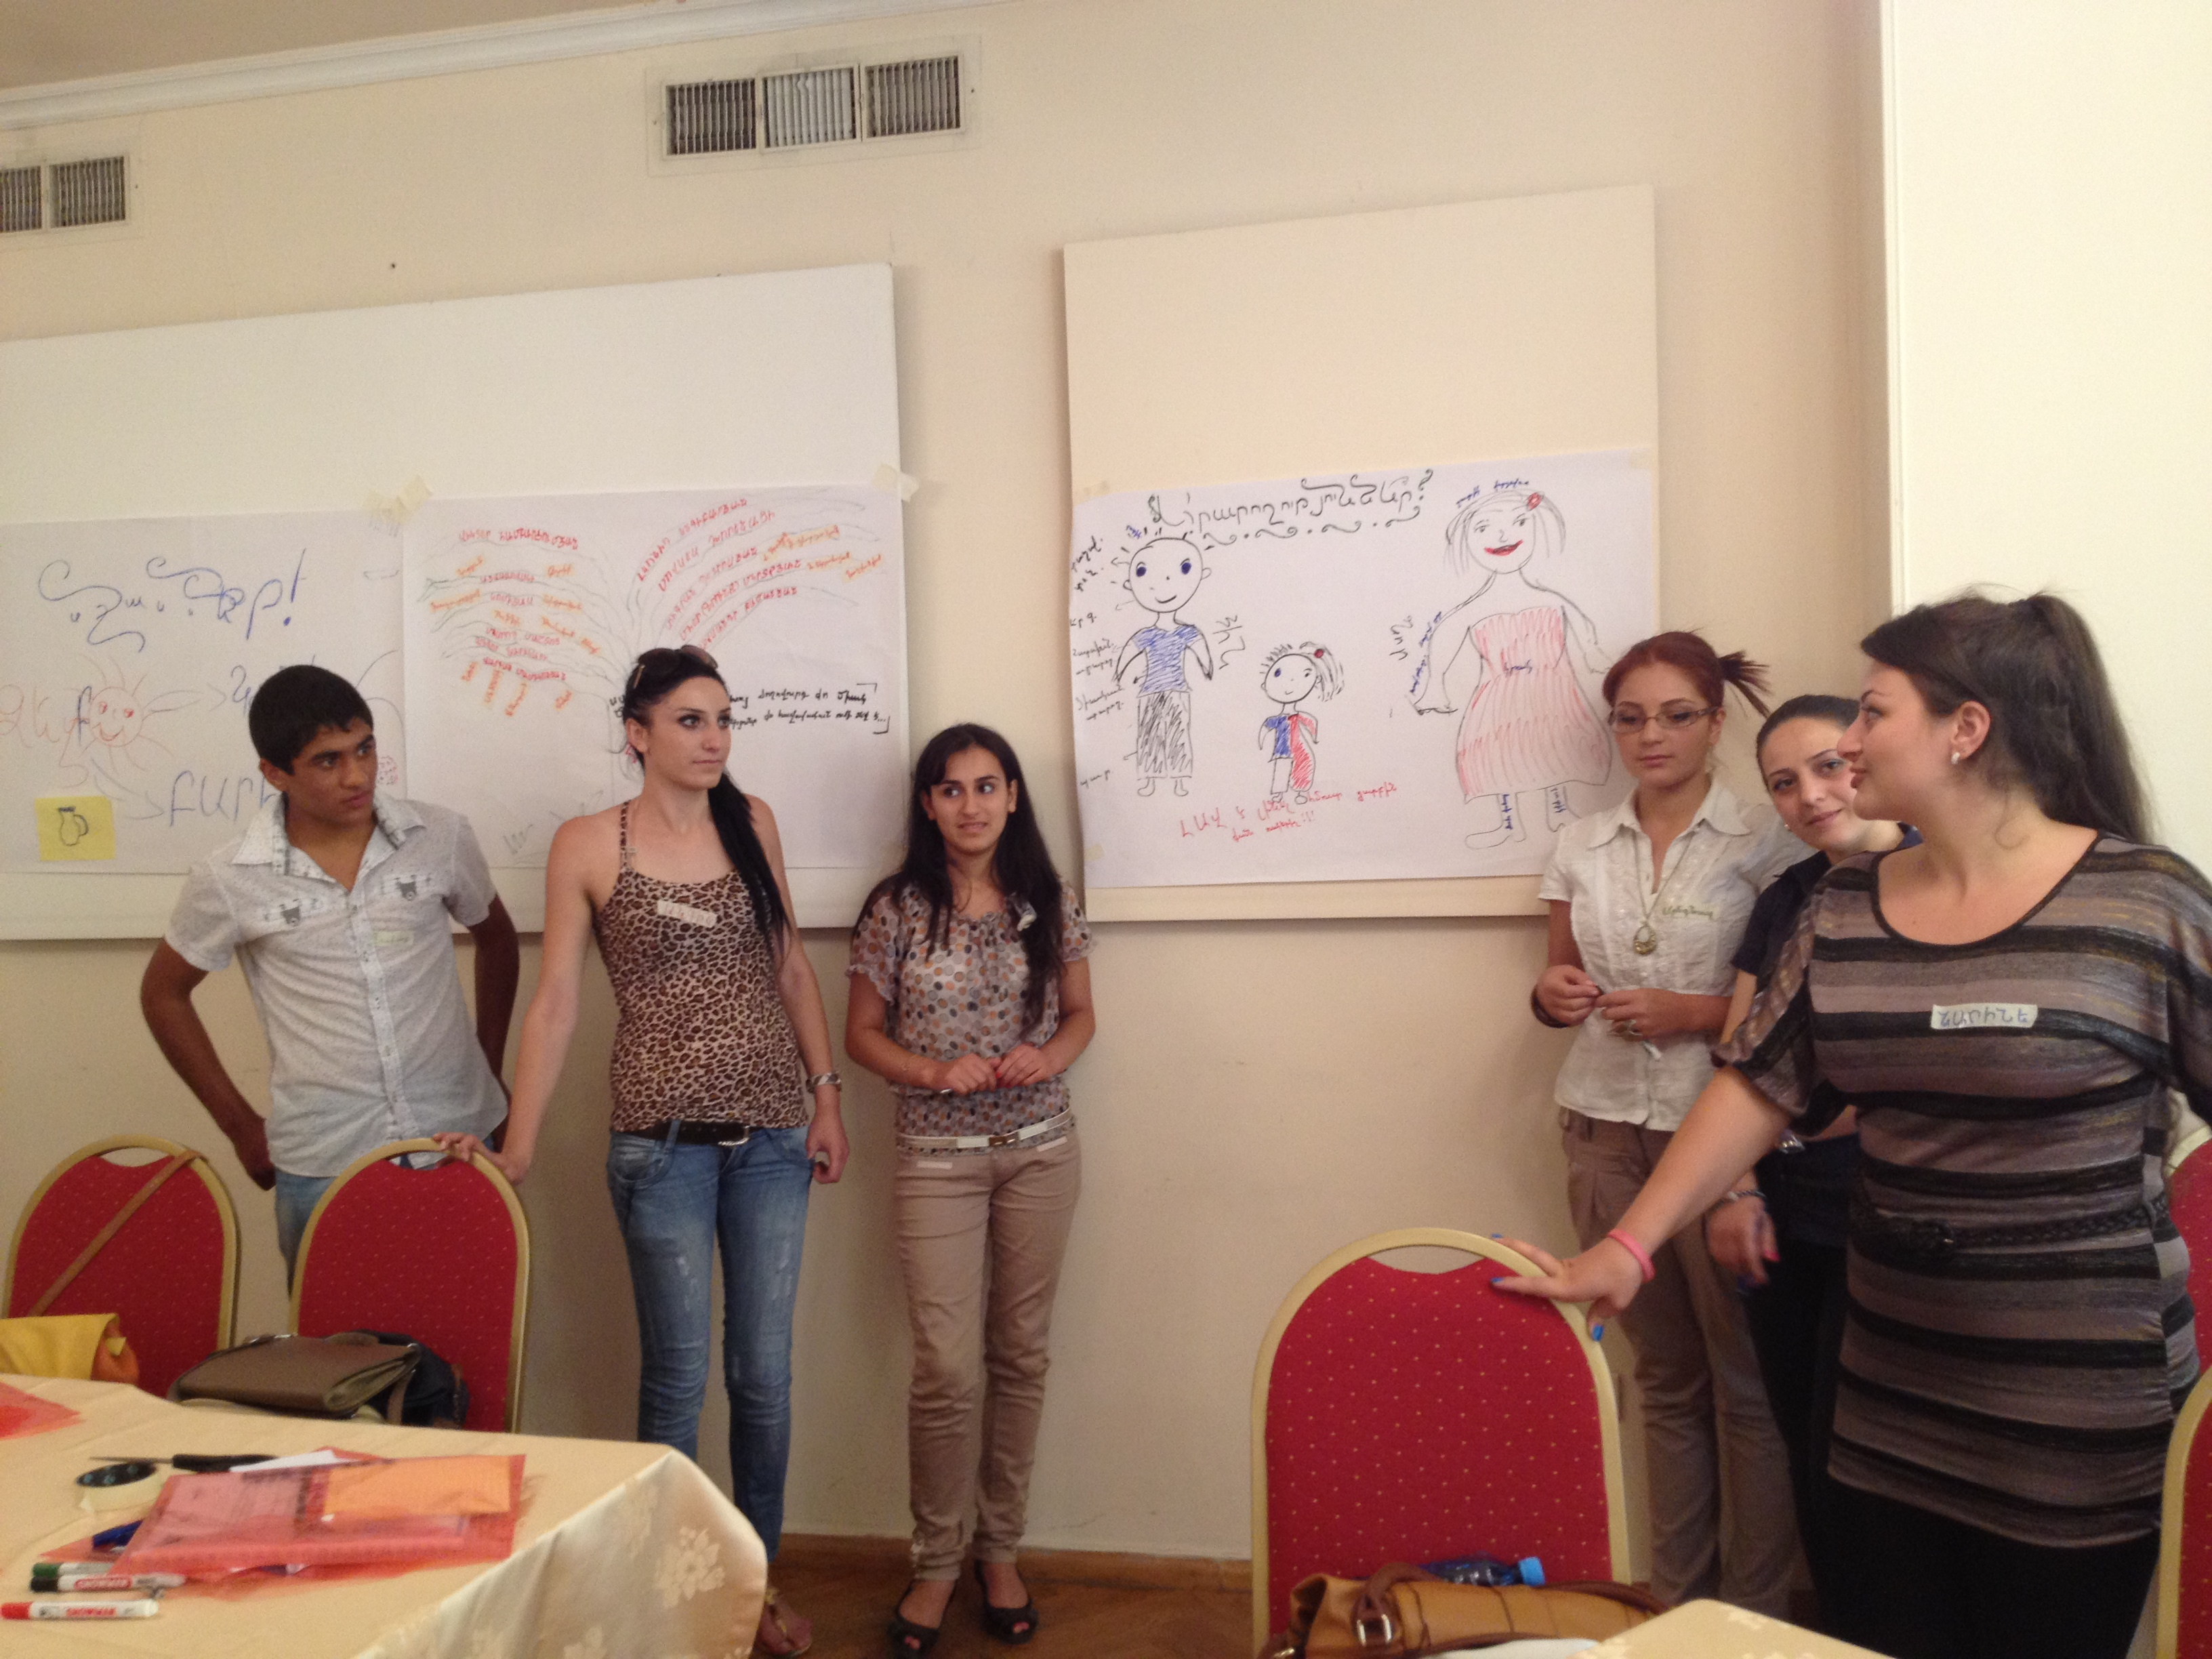 YARCC_Youth Training on Shared Values  Yerevan_Preparing a Poster (6)